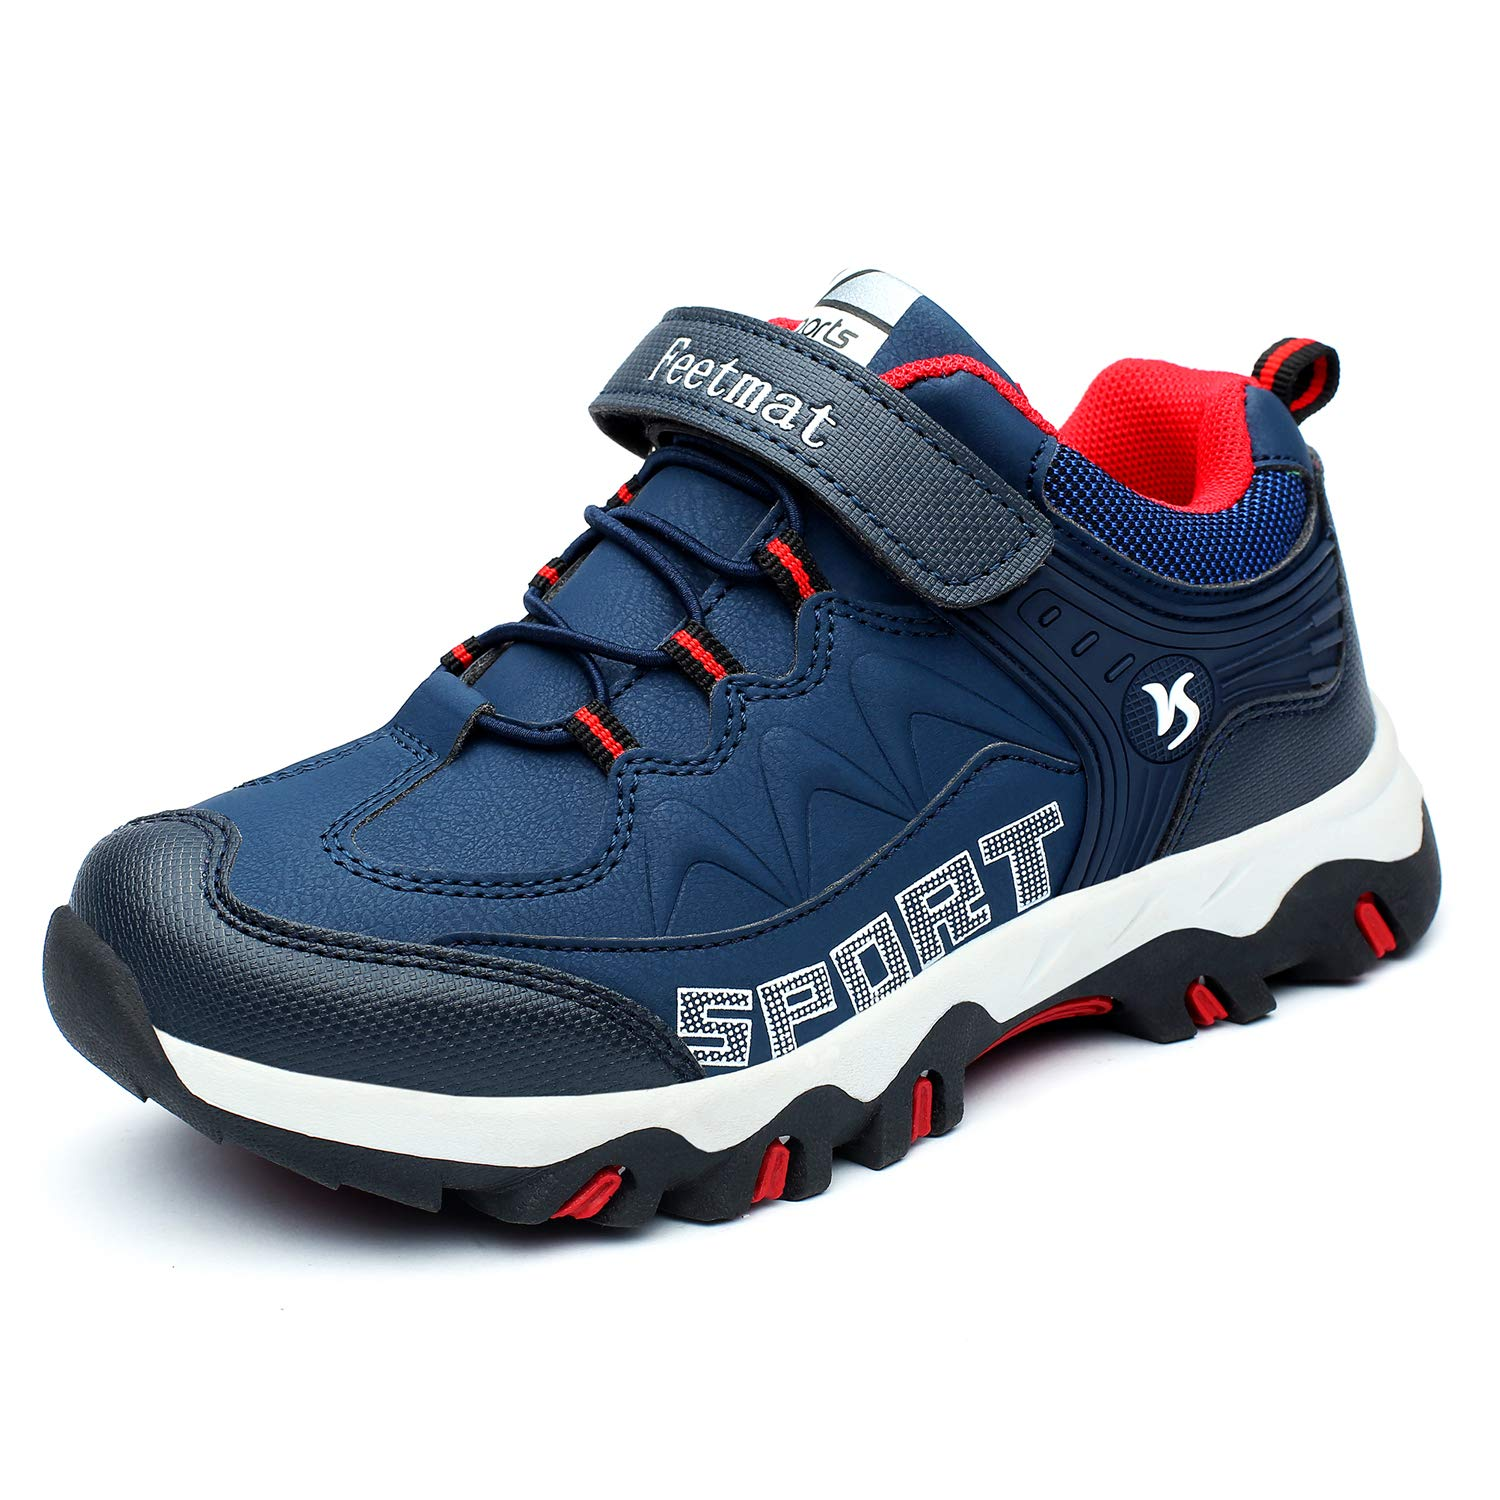 MARSVOVO Boy's Shoes Waterproof Hiking Shoes Walking Running Sneakers Navy Blue Size 5